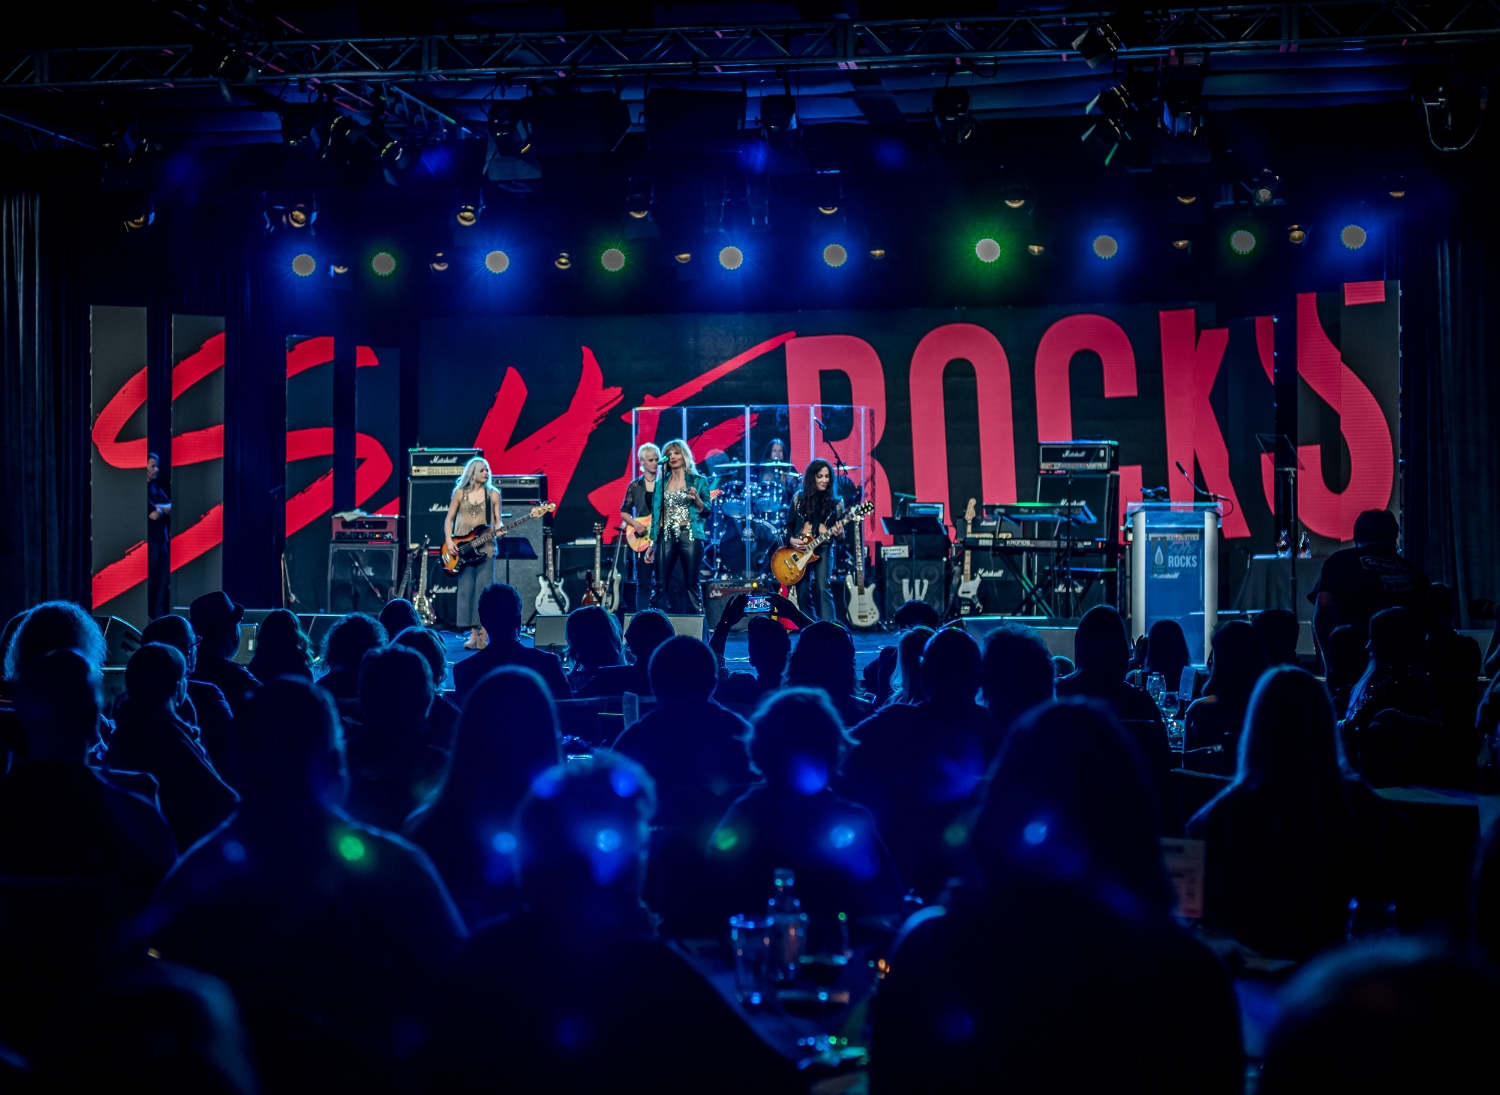 Marlain Angelides with Lez Zeppelin on she Rocks stage